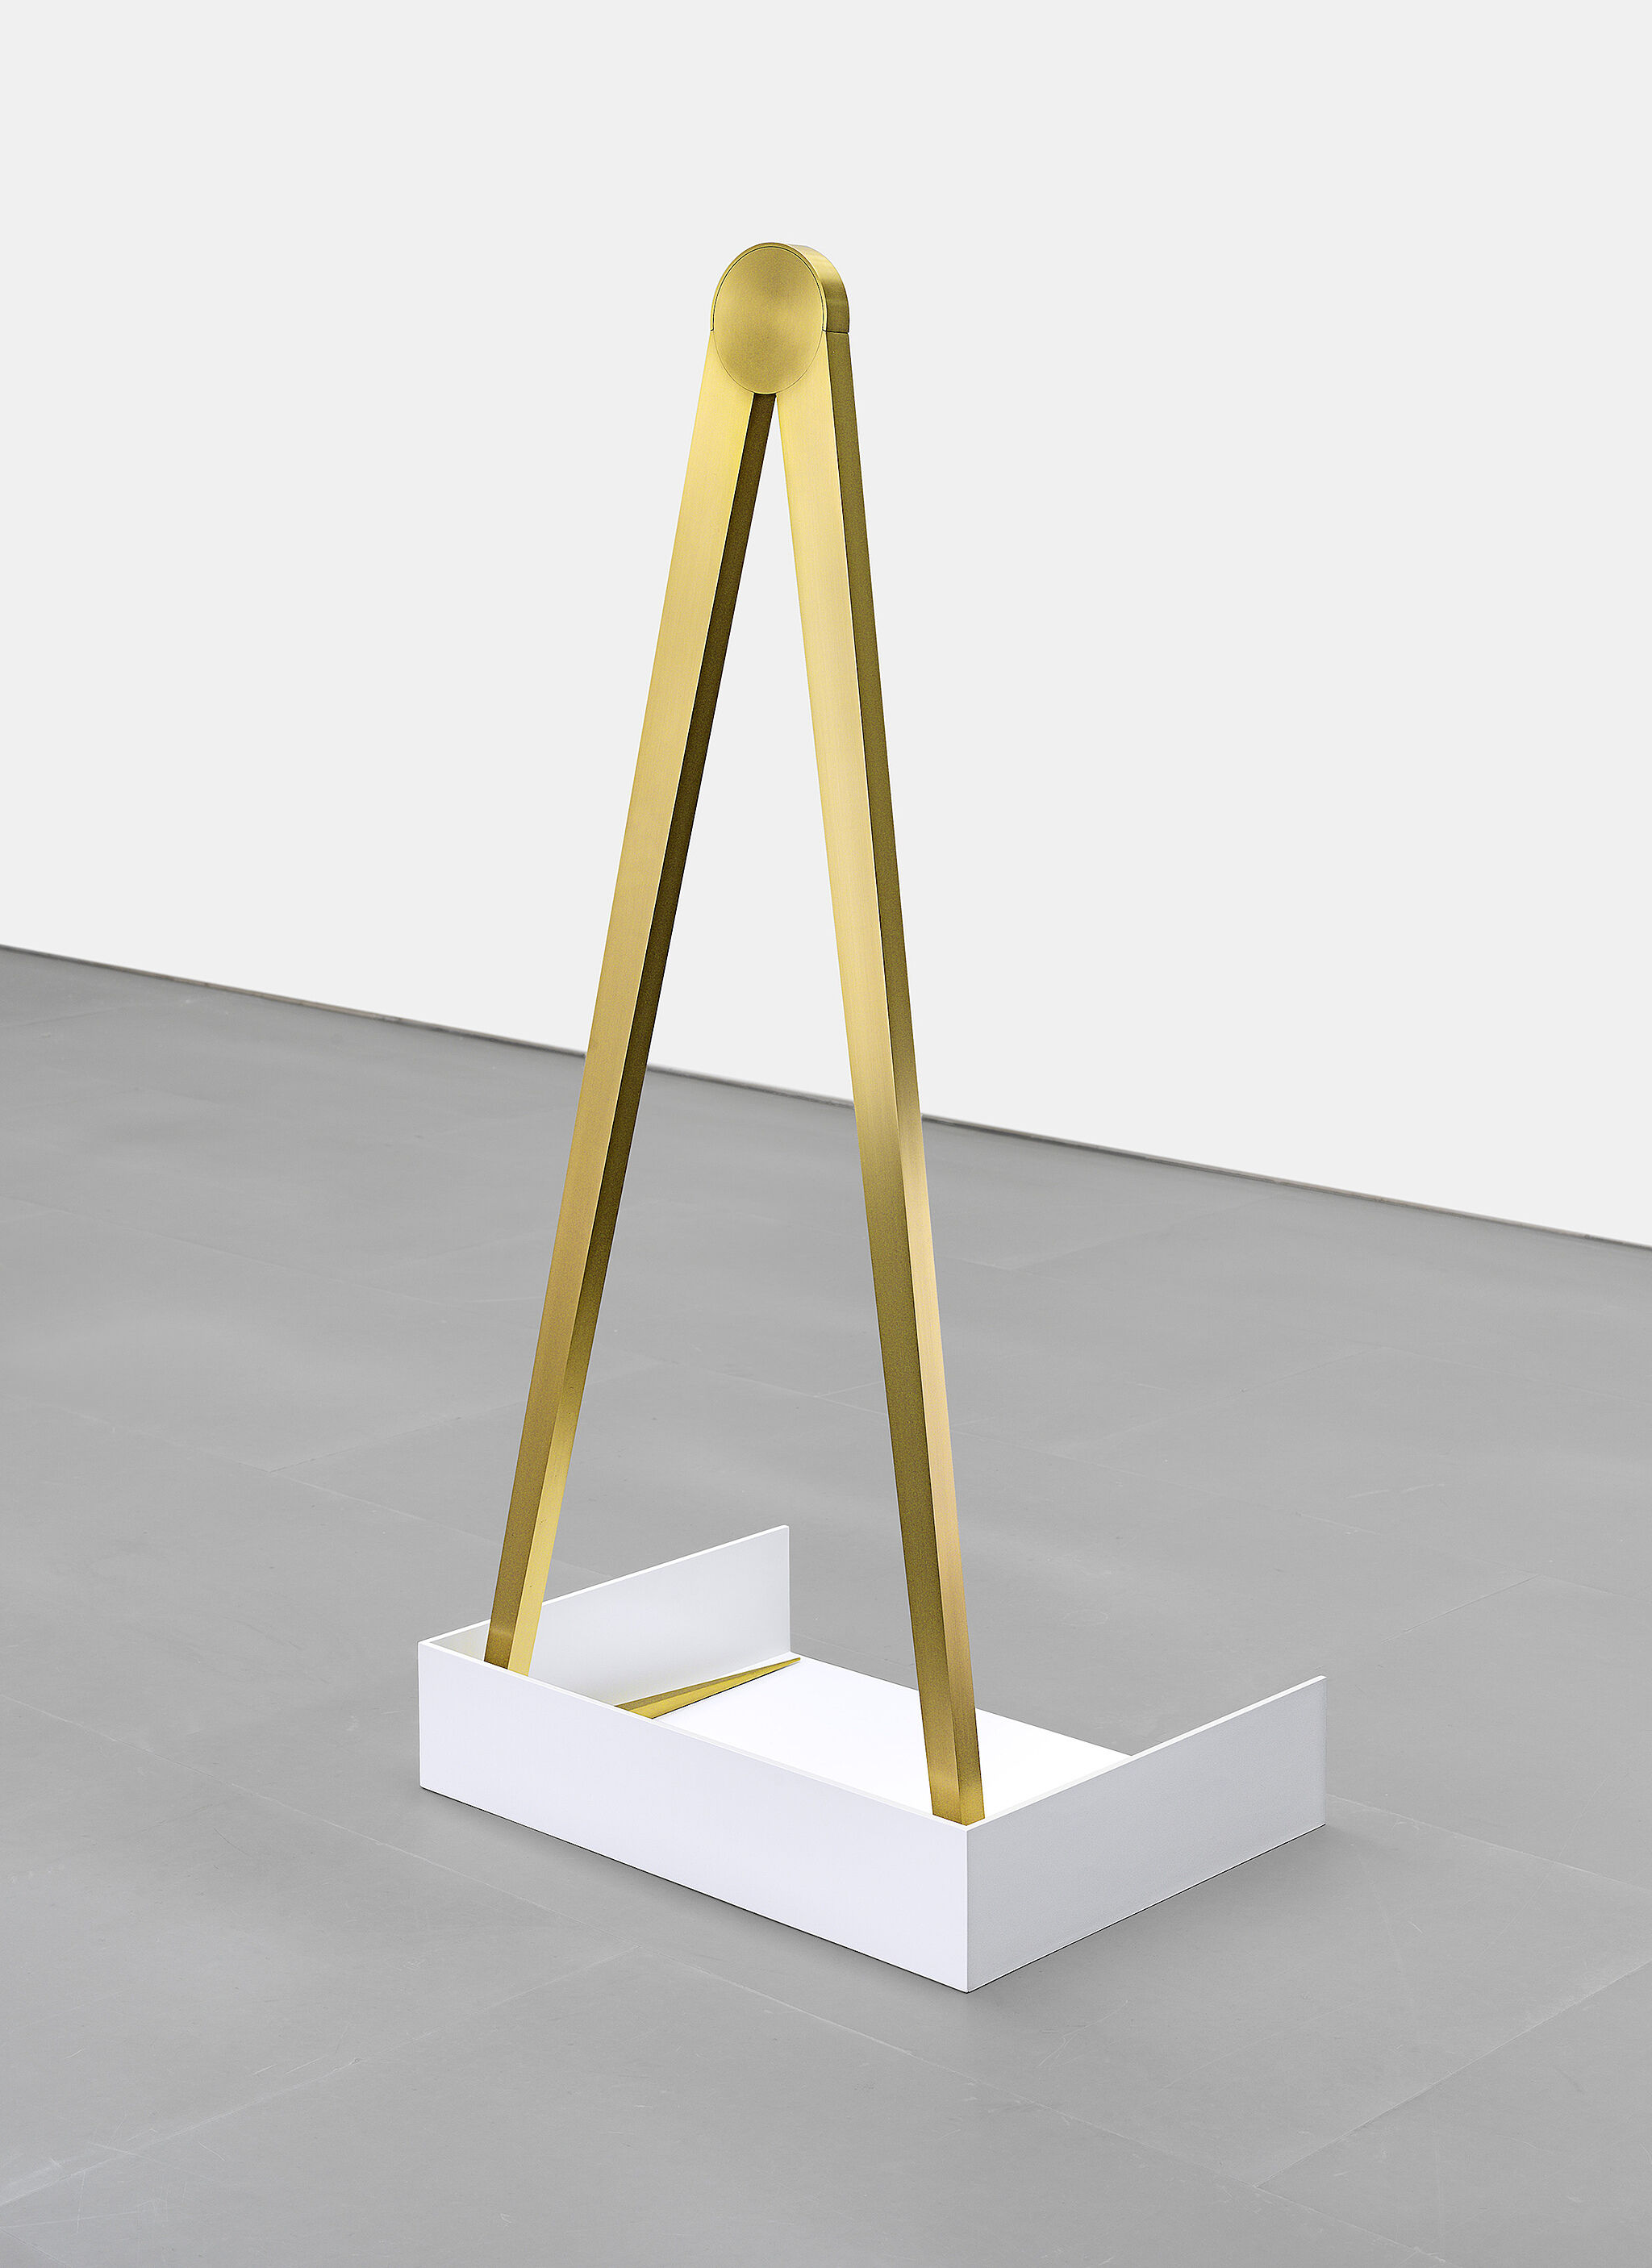 A bronze triangular sculpture on a white rectangular base.